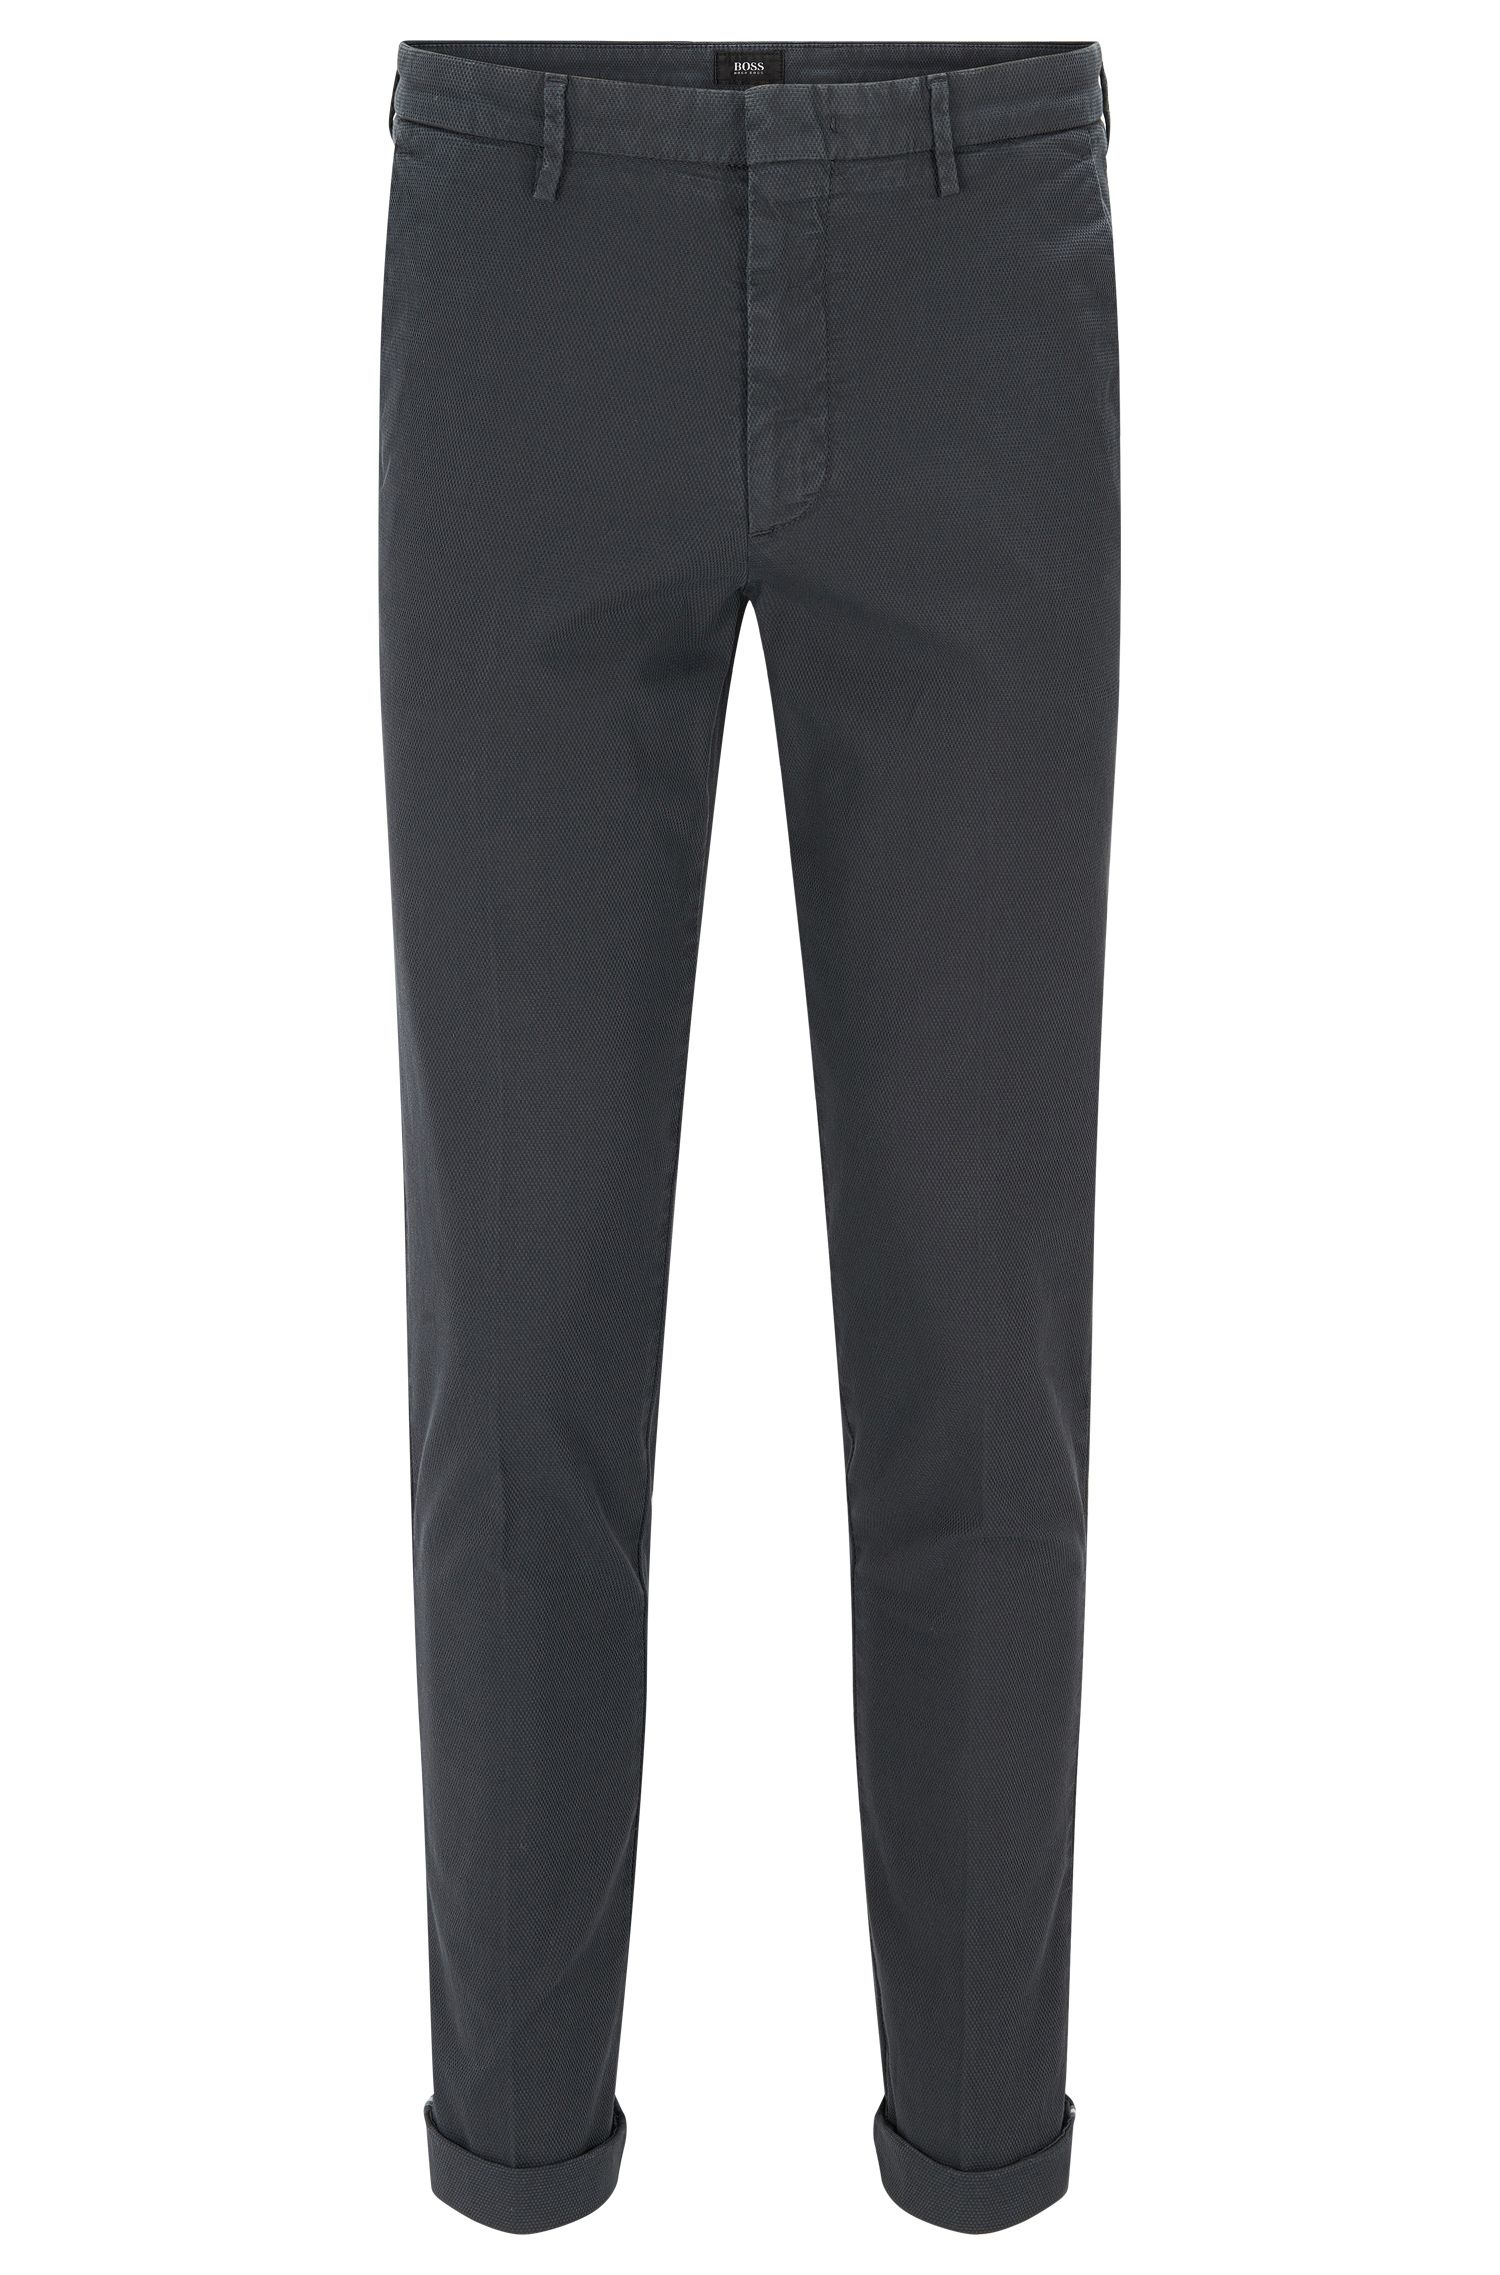 Garment-Dyed Stretch Cotton Chino Pant, Slim Fit | Kaito W, Dark Grey